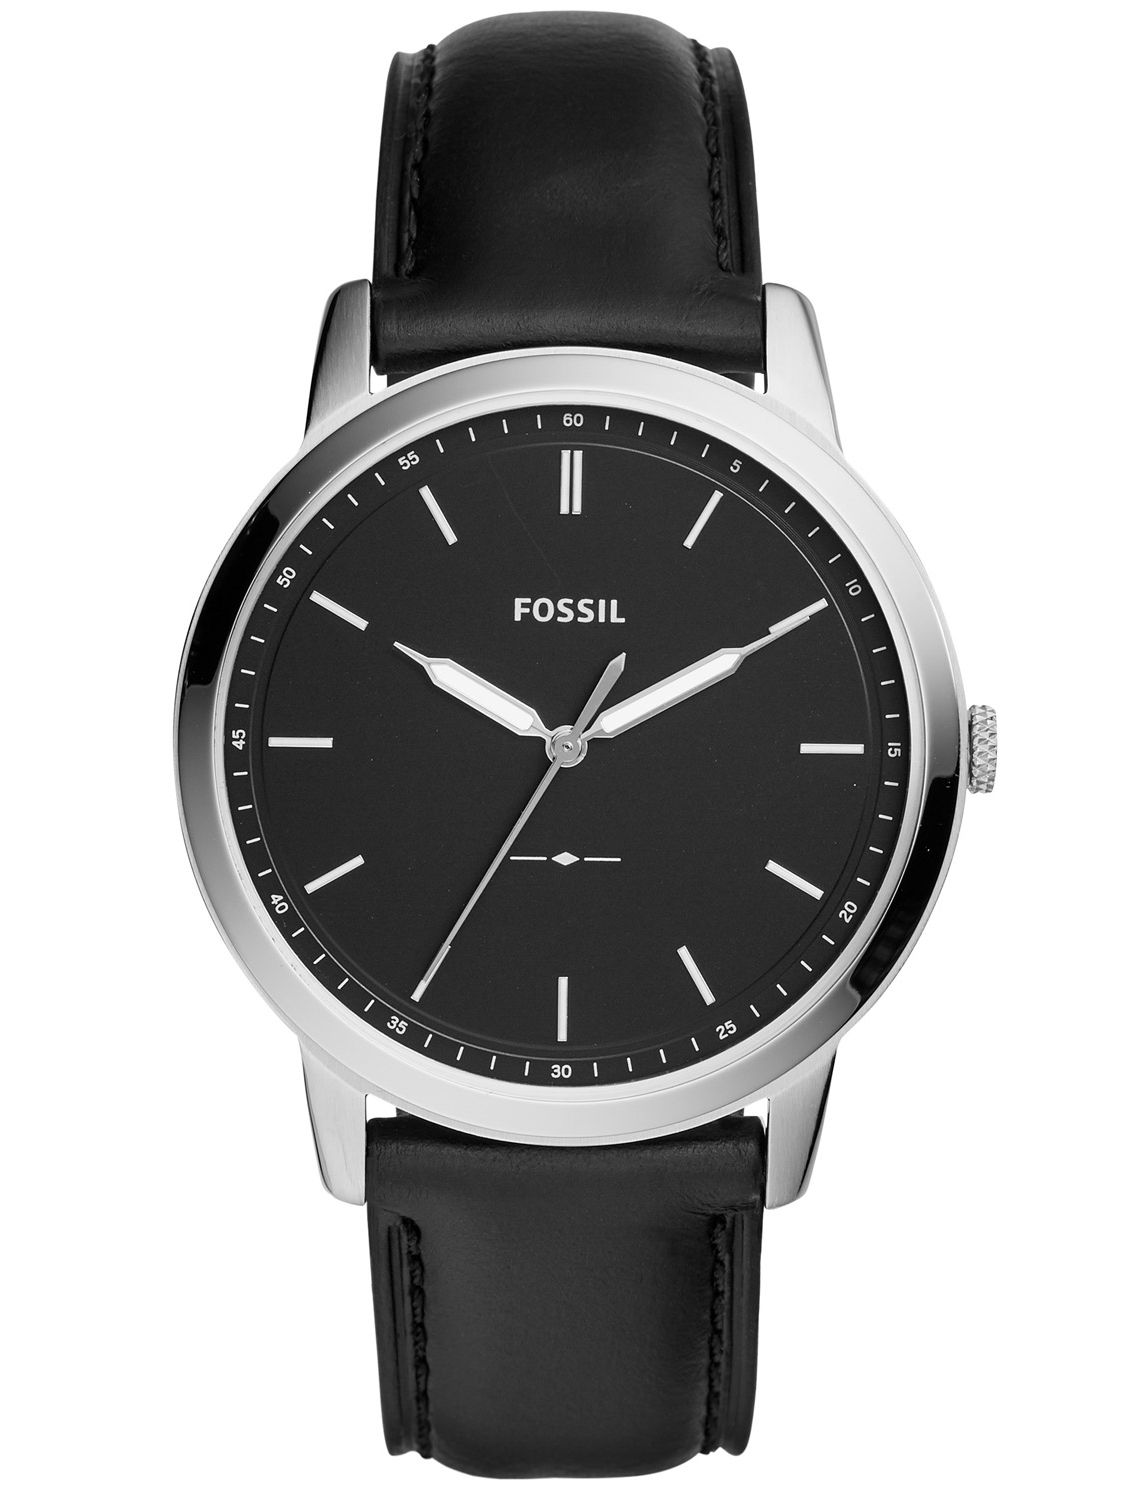 c073a0d54 Fossil FS5398 Mens Watch The Minimalist Image 1 ...